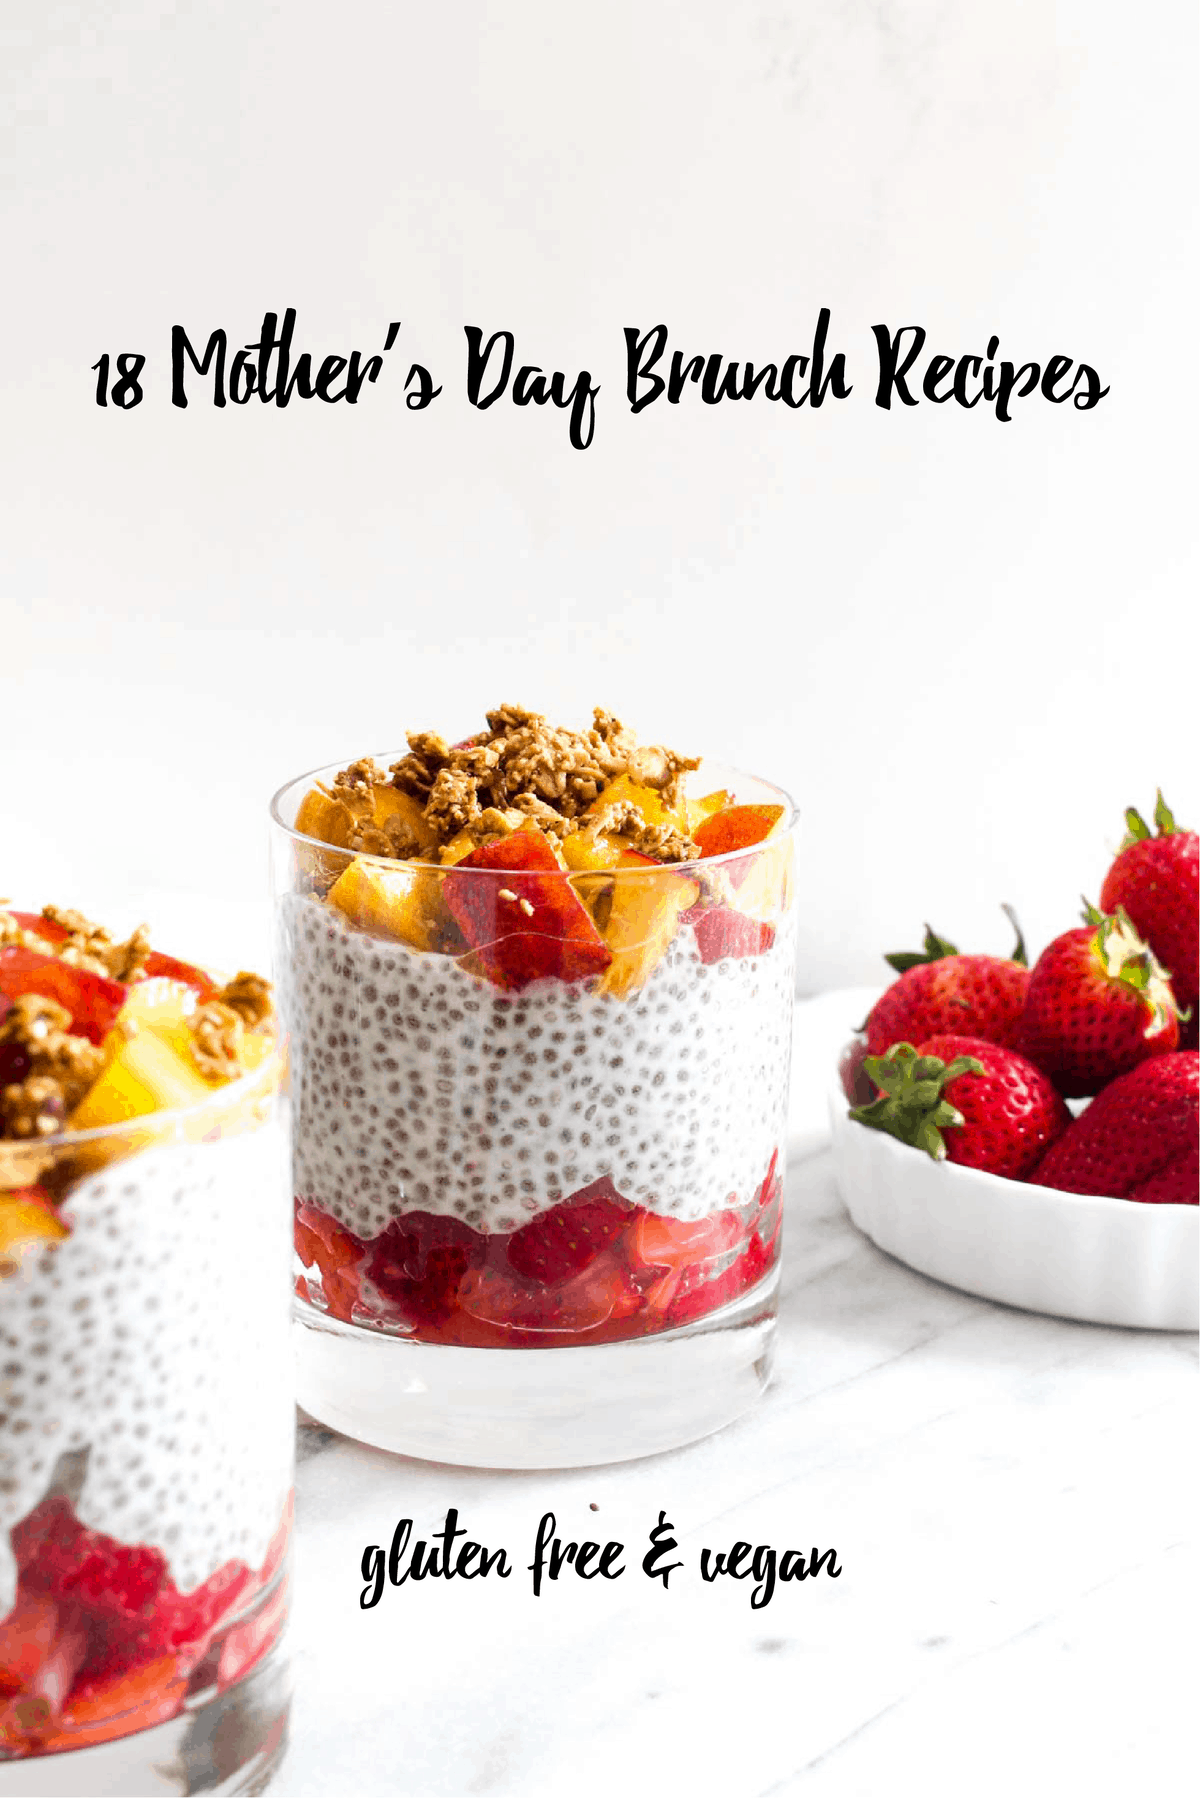 These 18 Mother's Day Brunch Recipes are sure to give you all the inspiration you need! These recipes are all healthy, vegan, gluten free and delicious!